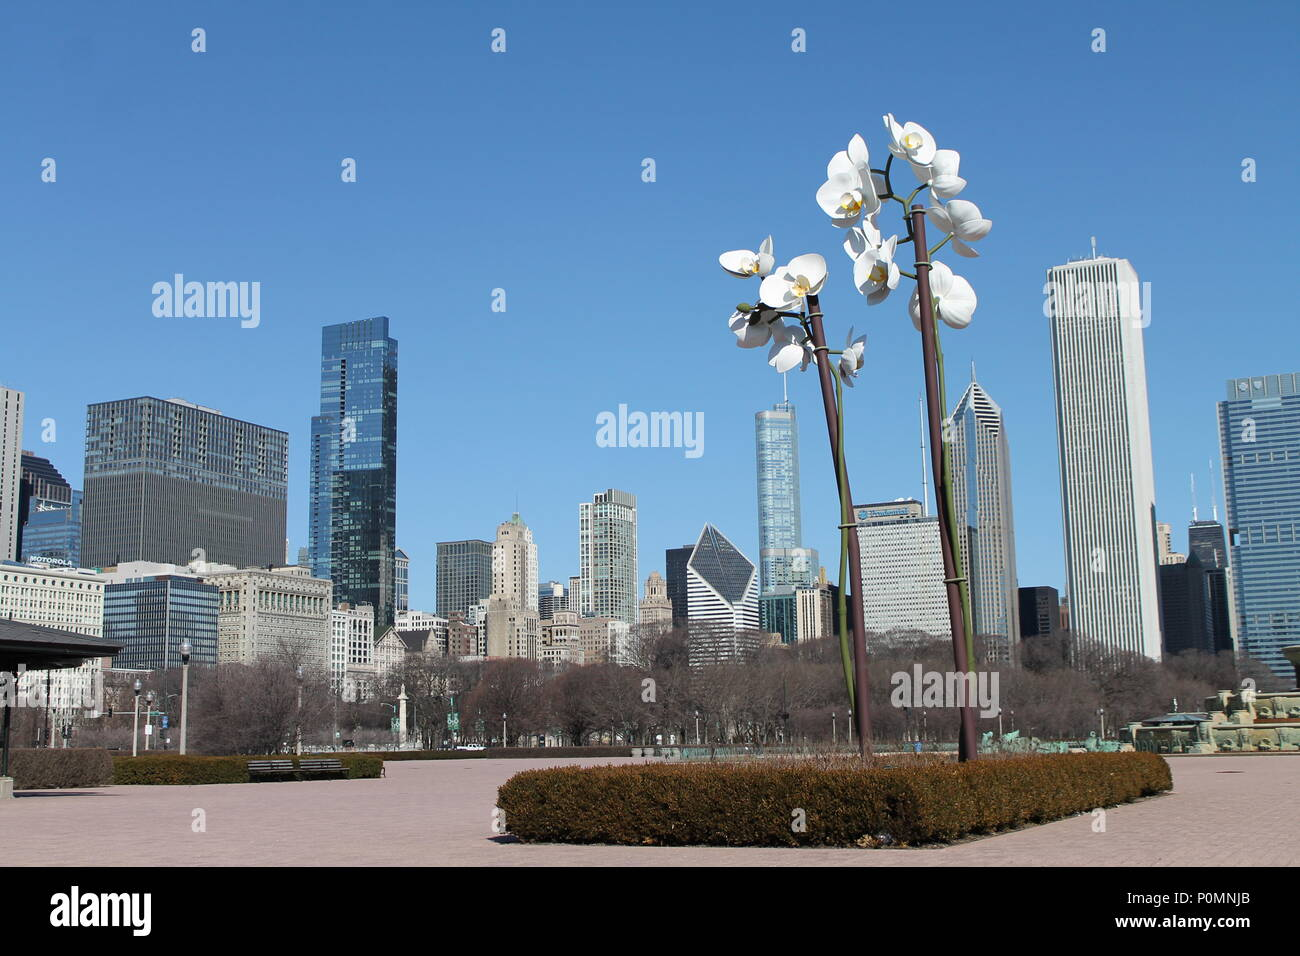 Downtown Chicago a.k.a. Windy City. - Stock Image